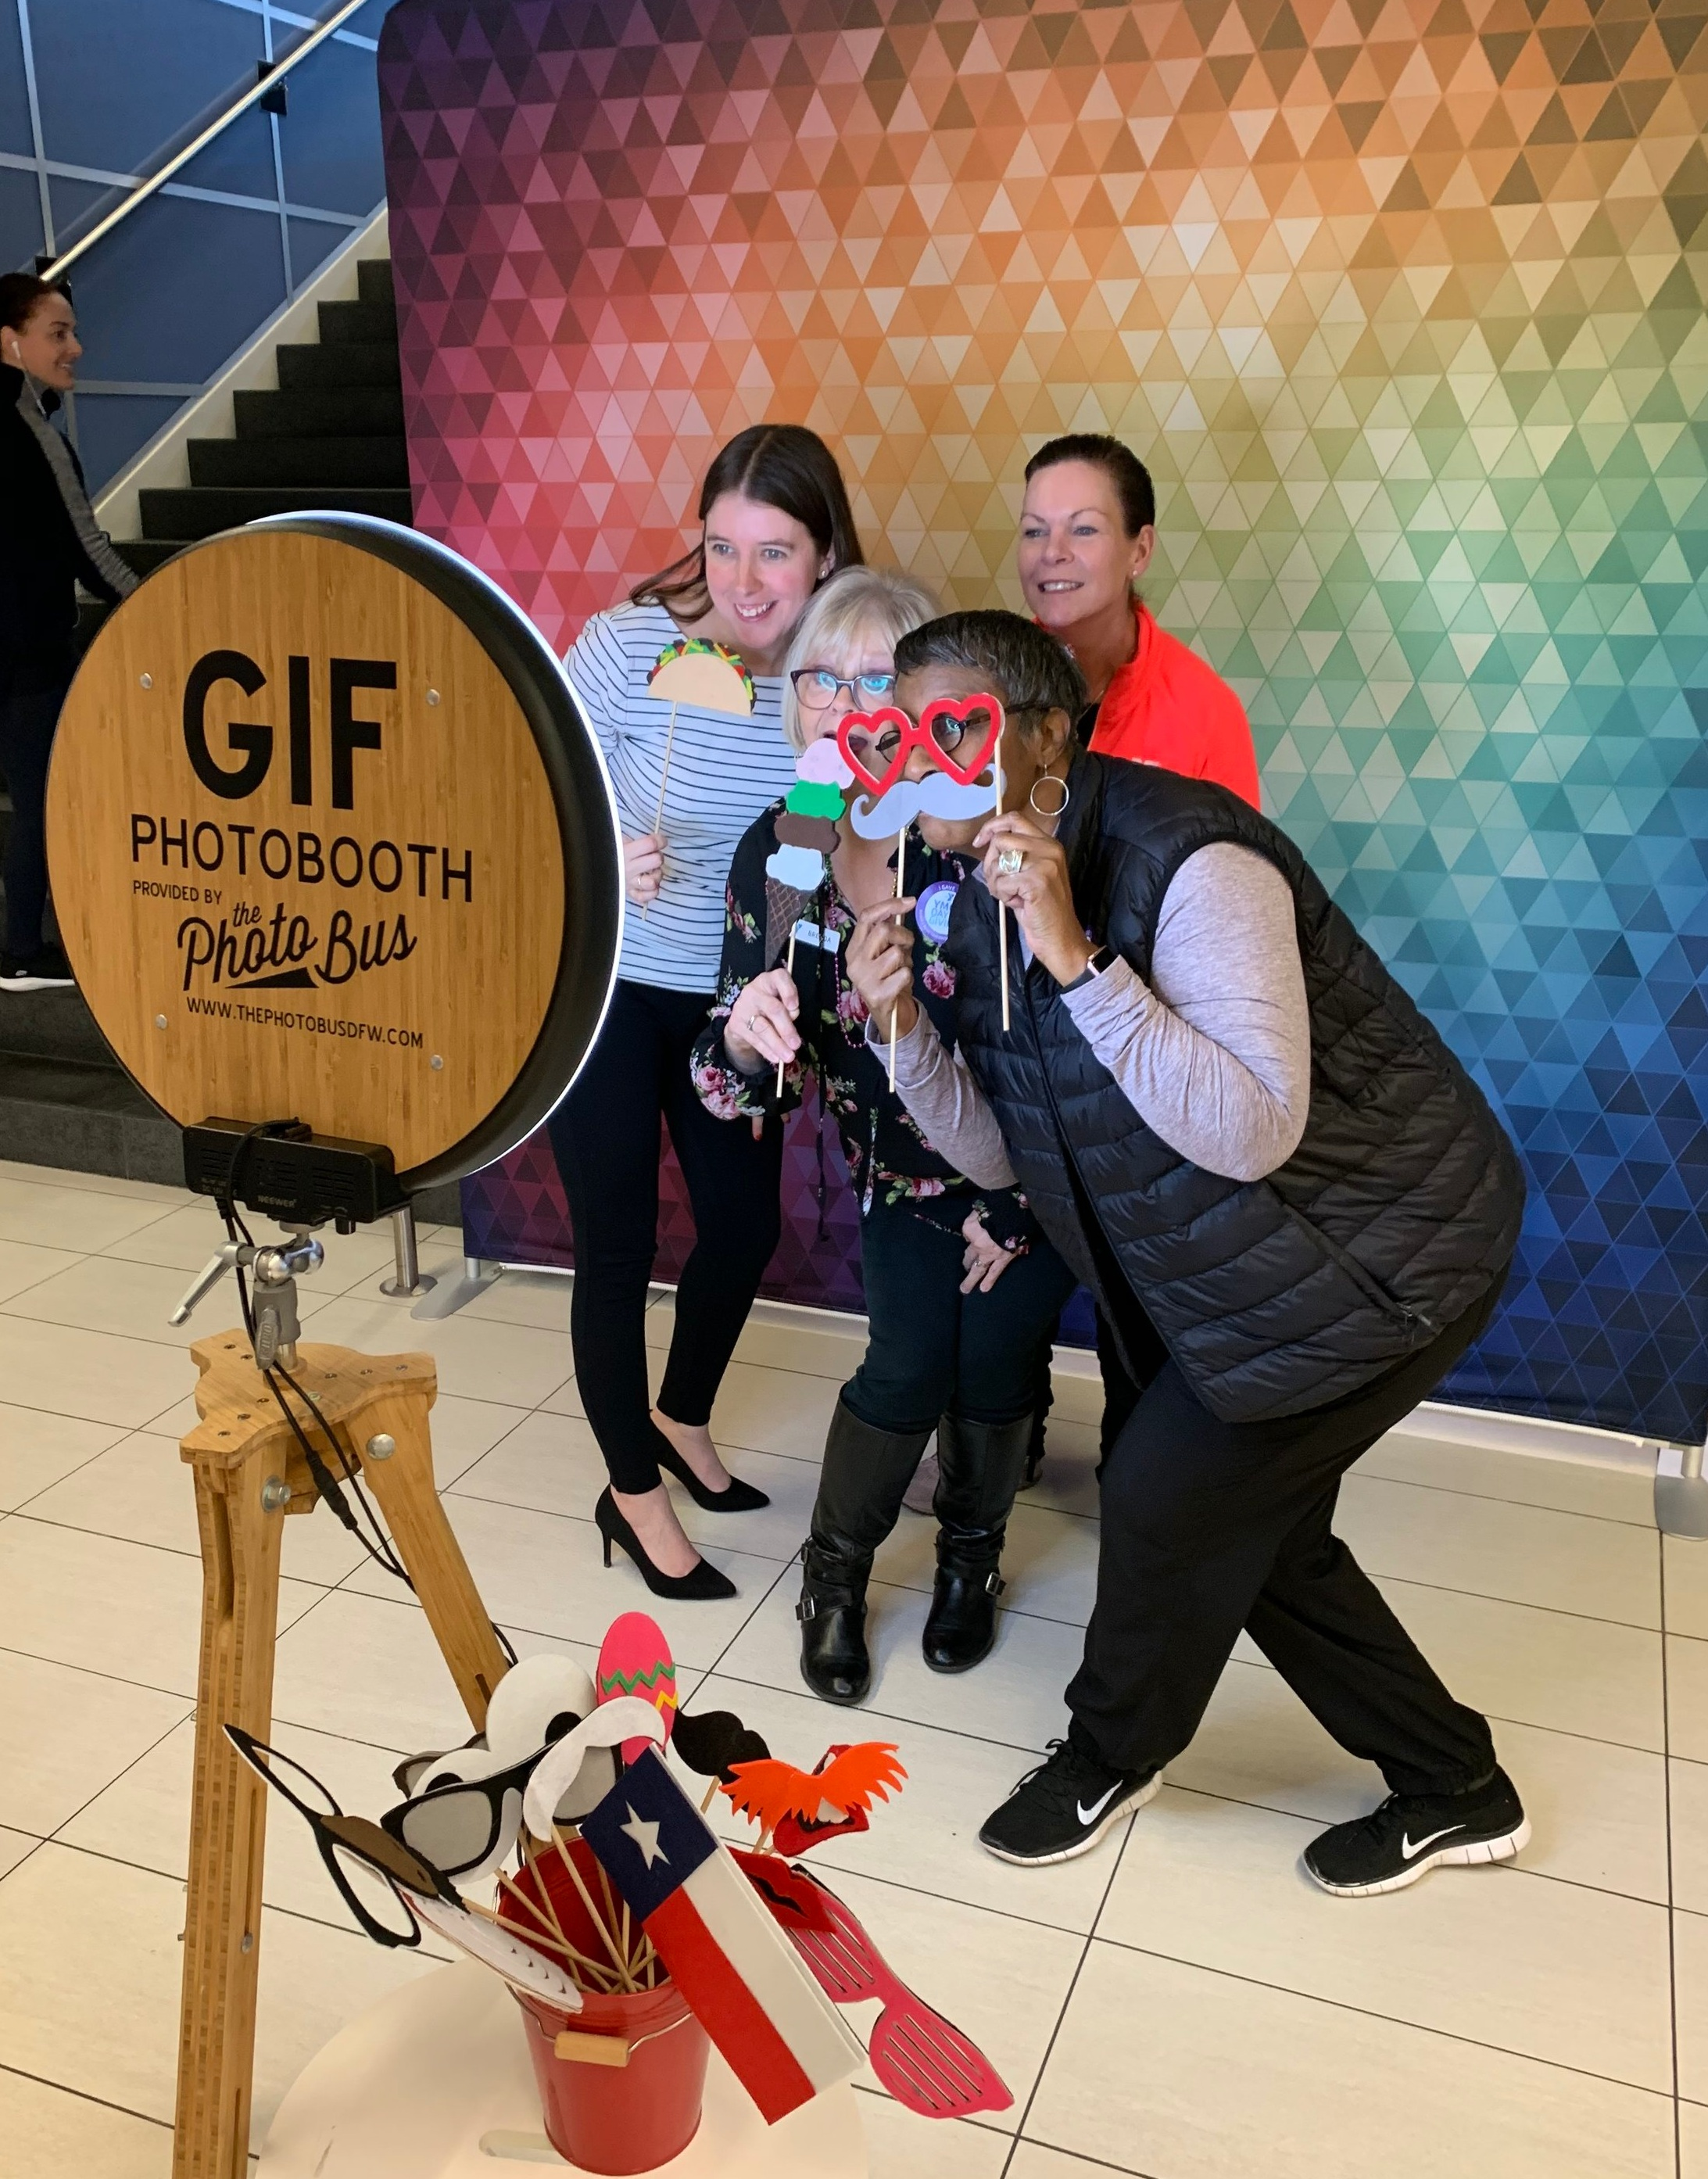 Groups having fun with our GIF Photo Booth. It creates GIFs and Boomerangs, it also offers simple single shots, and offers live props and green screen.